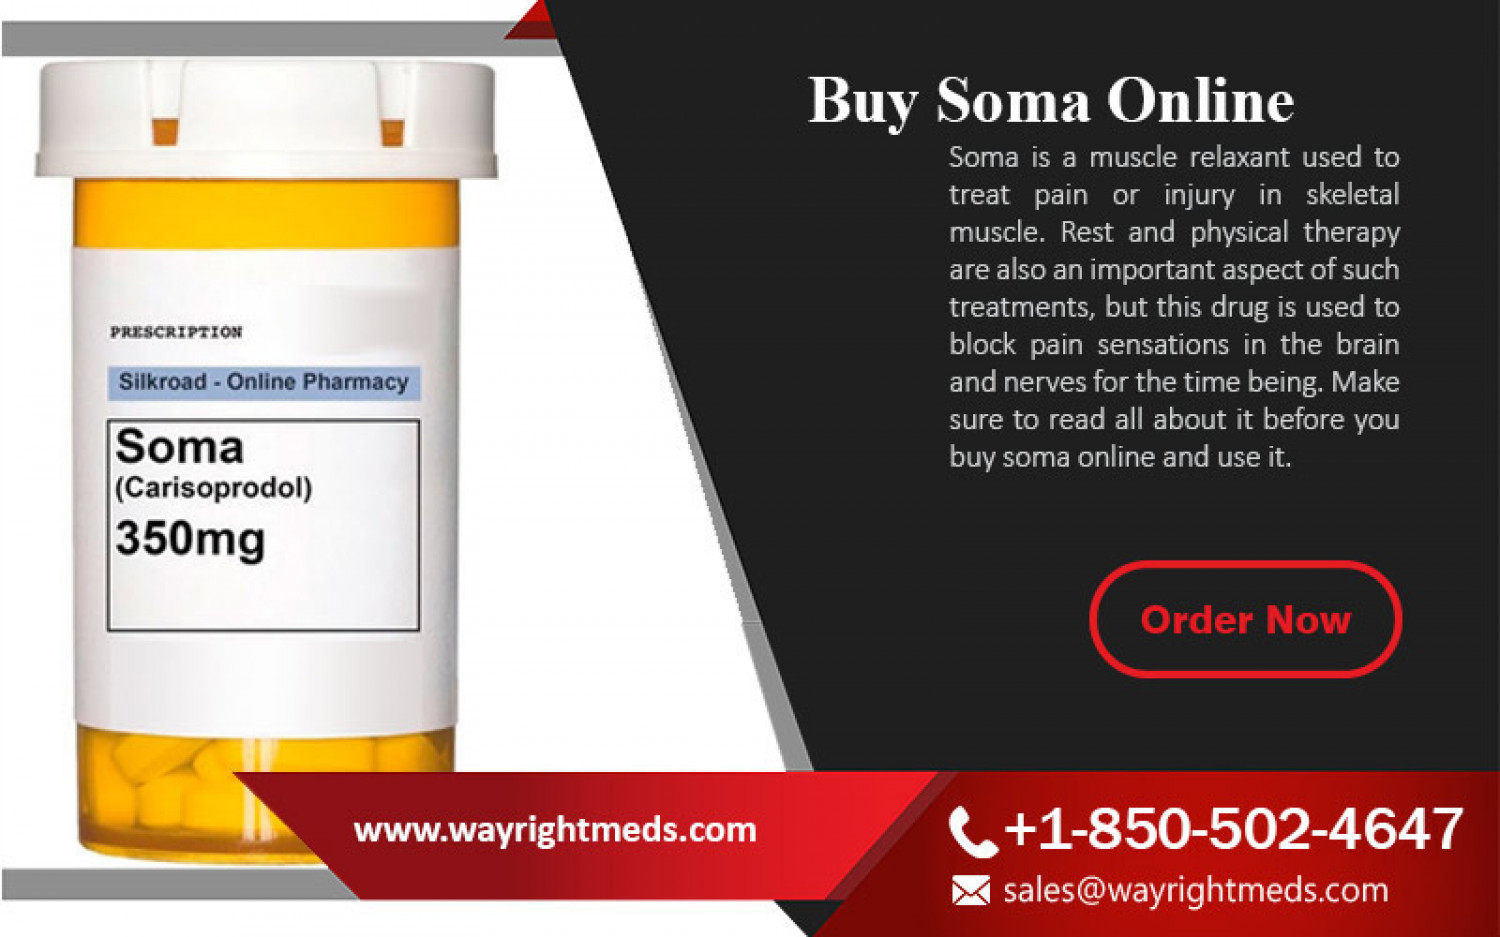 Buy Soma Online for Muscle Spasm Treatment - Wayrightmeds.com Infographic